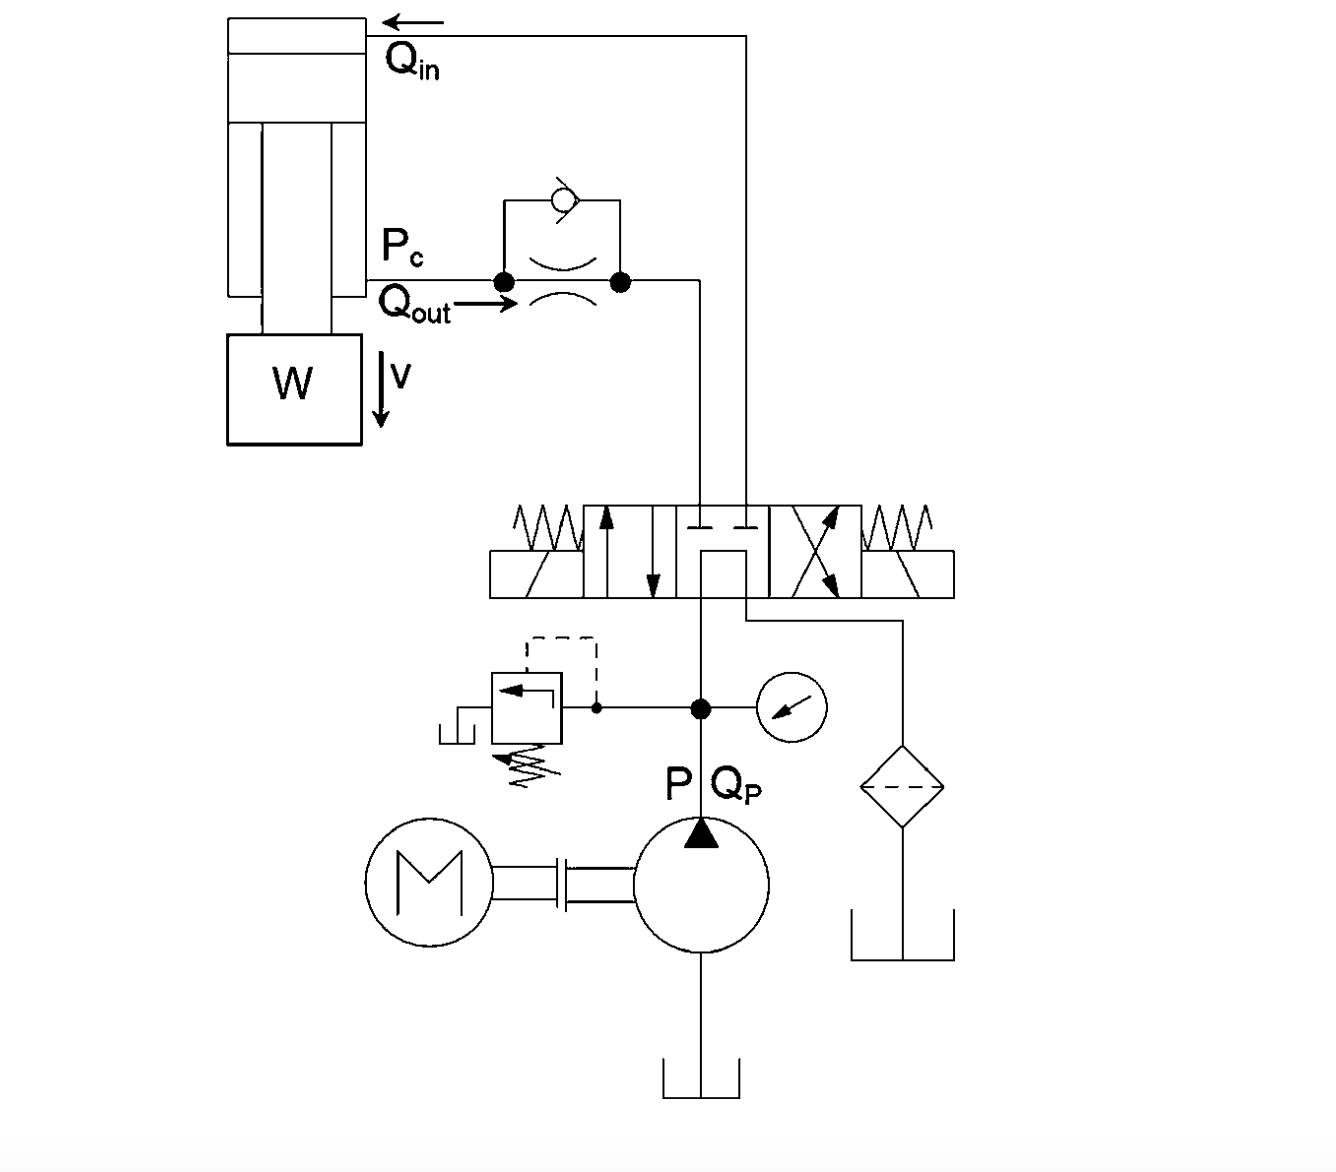 Circuit Load Circuitlab Mosfetled Question Shown Is The Hydraulic Of A Lifting System Lowering Speed